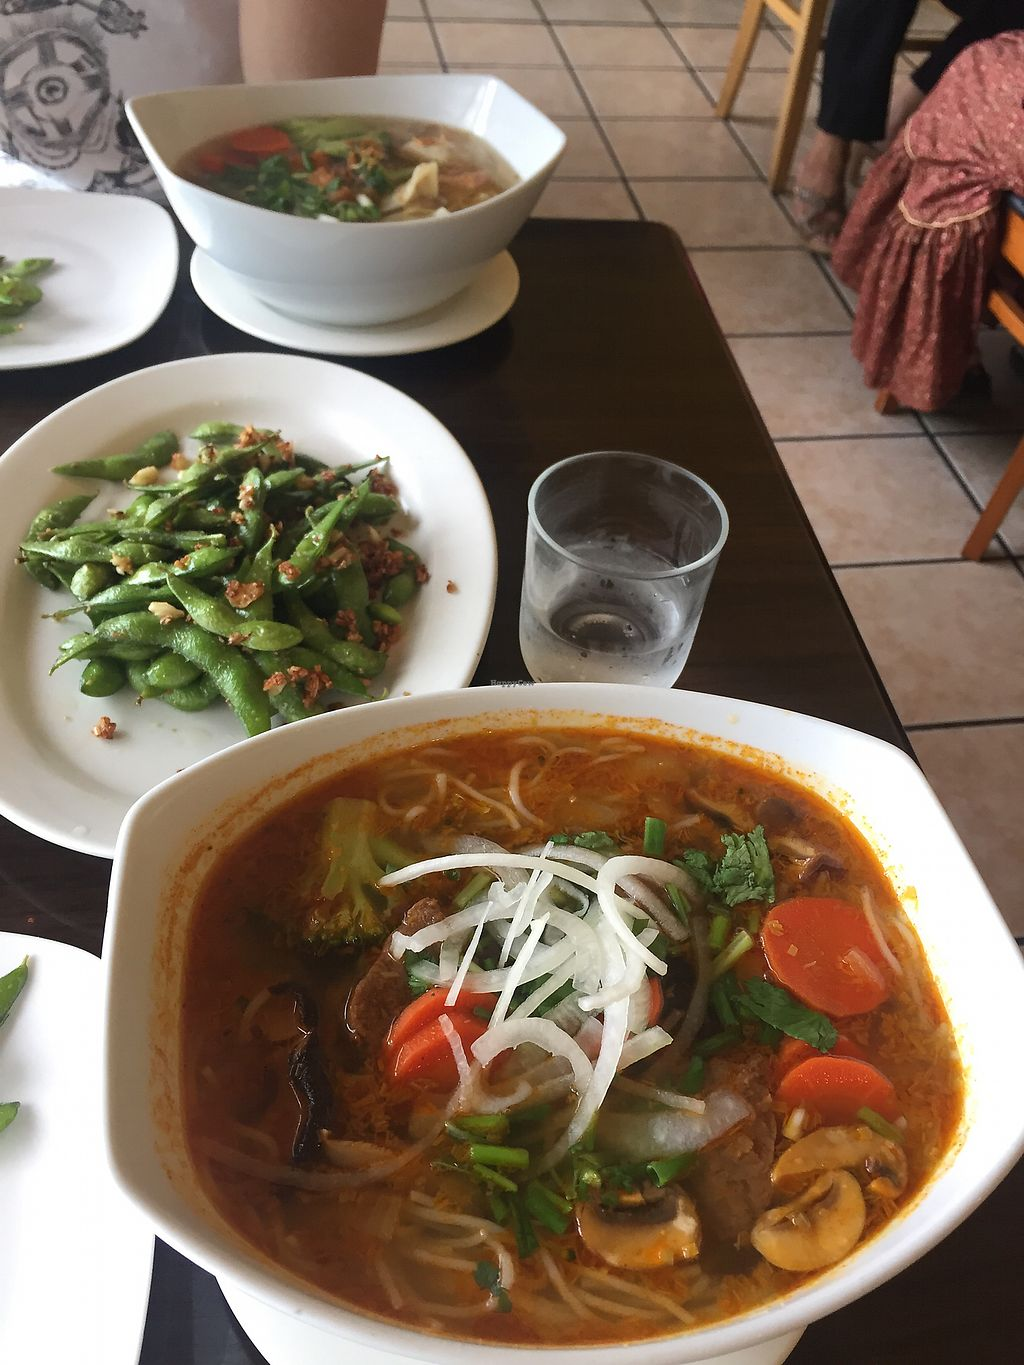 """Photo of Simple Joy  by <a href=""""/members/profile/ilovealbatross"""">ilovealbatross</a> <br/>Spicy soup  <br/> December 11, 2017  - <a href='/contact/abuse/image/24209/334623'>Report</a>"""